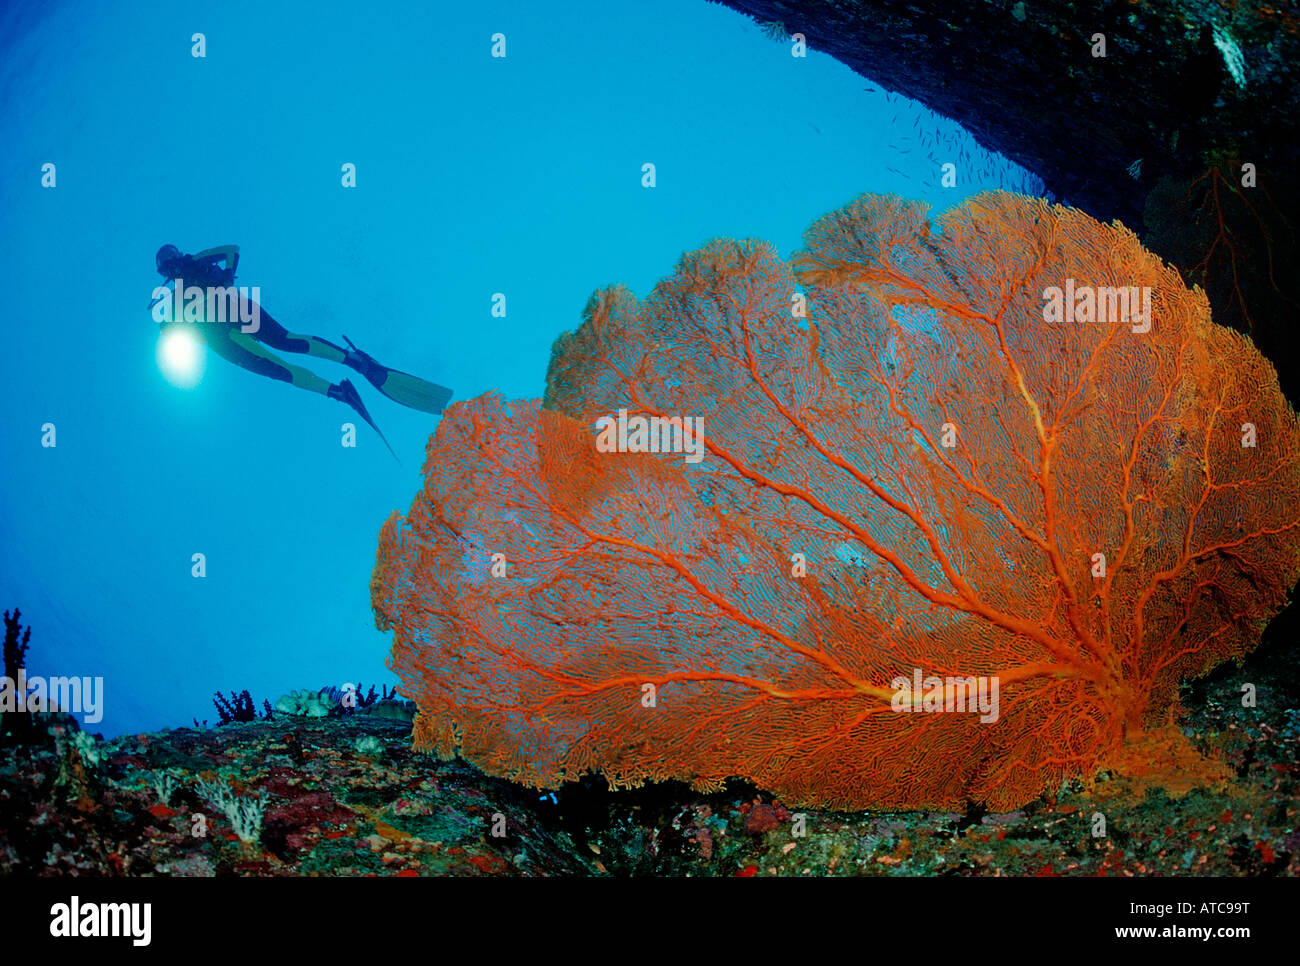 Diver and Red Sea Fan Similan Islands Thailand Stock Photo